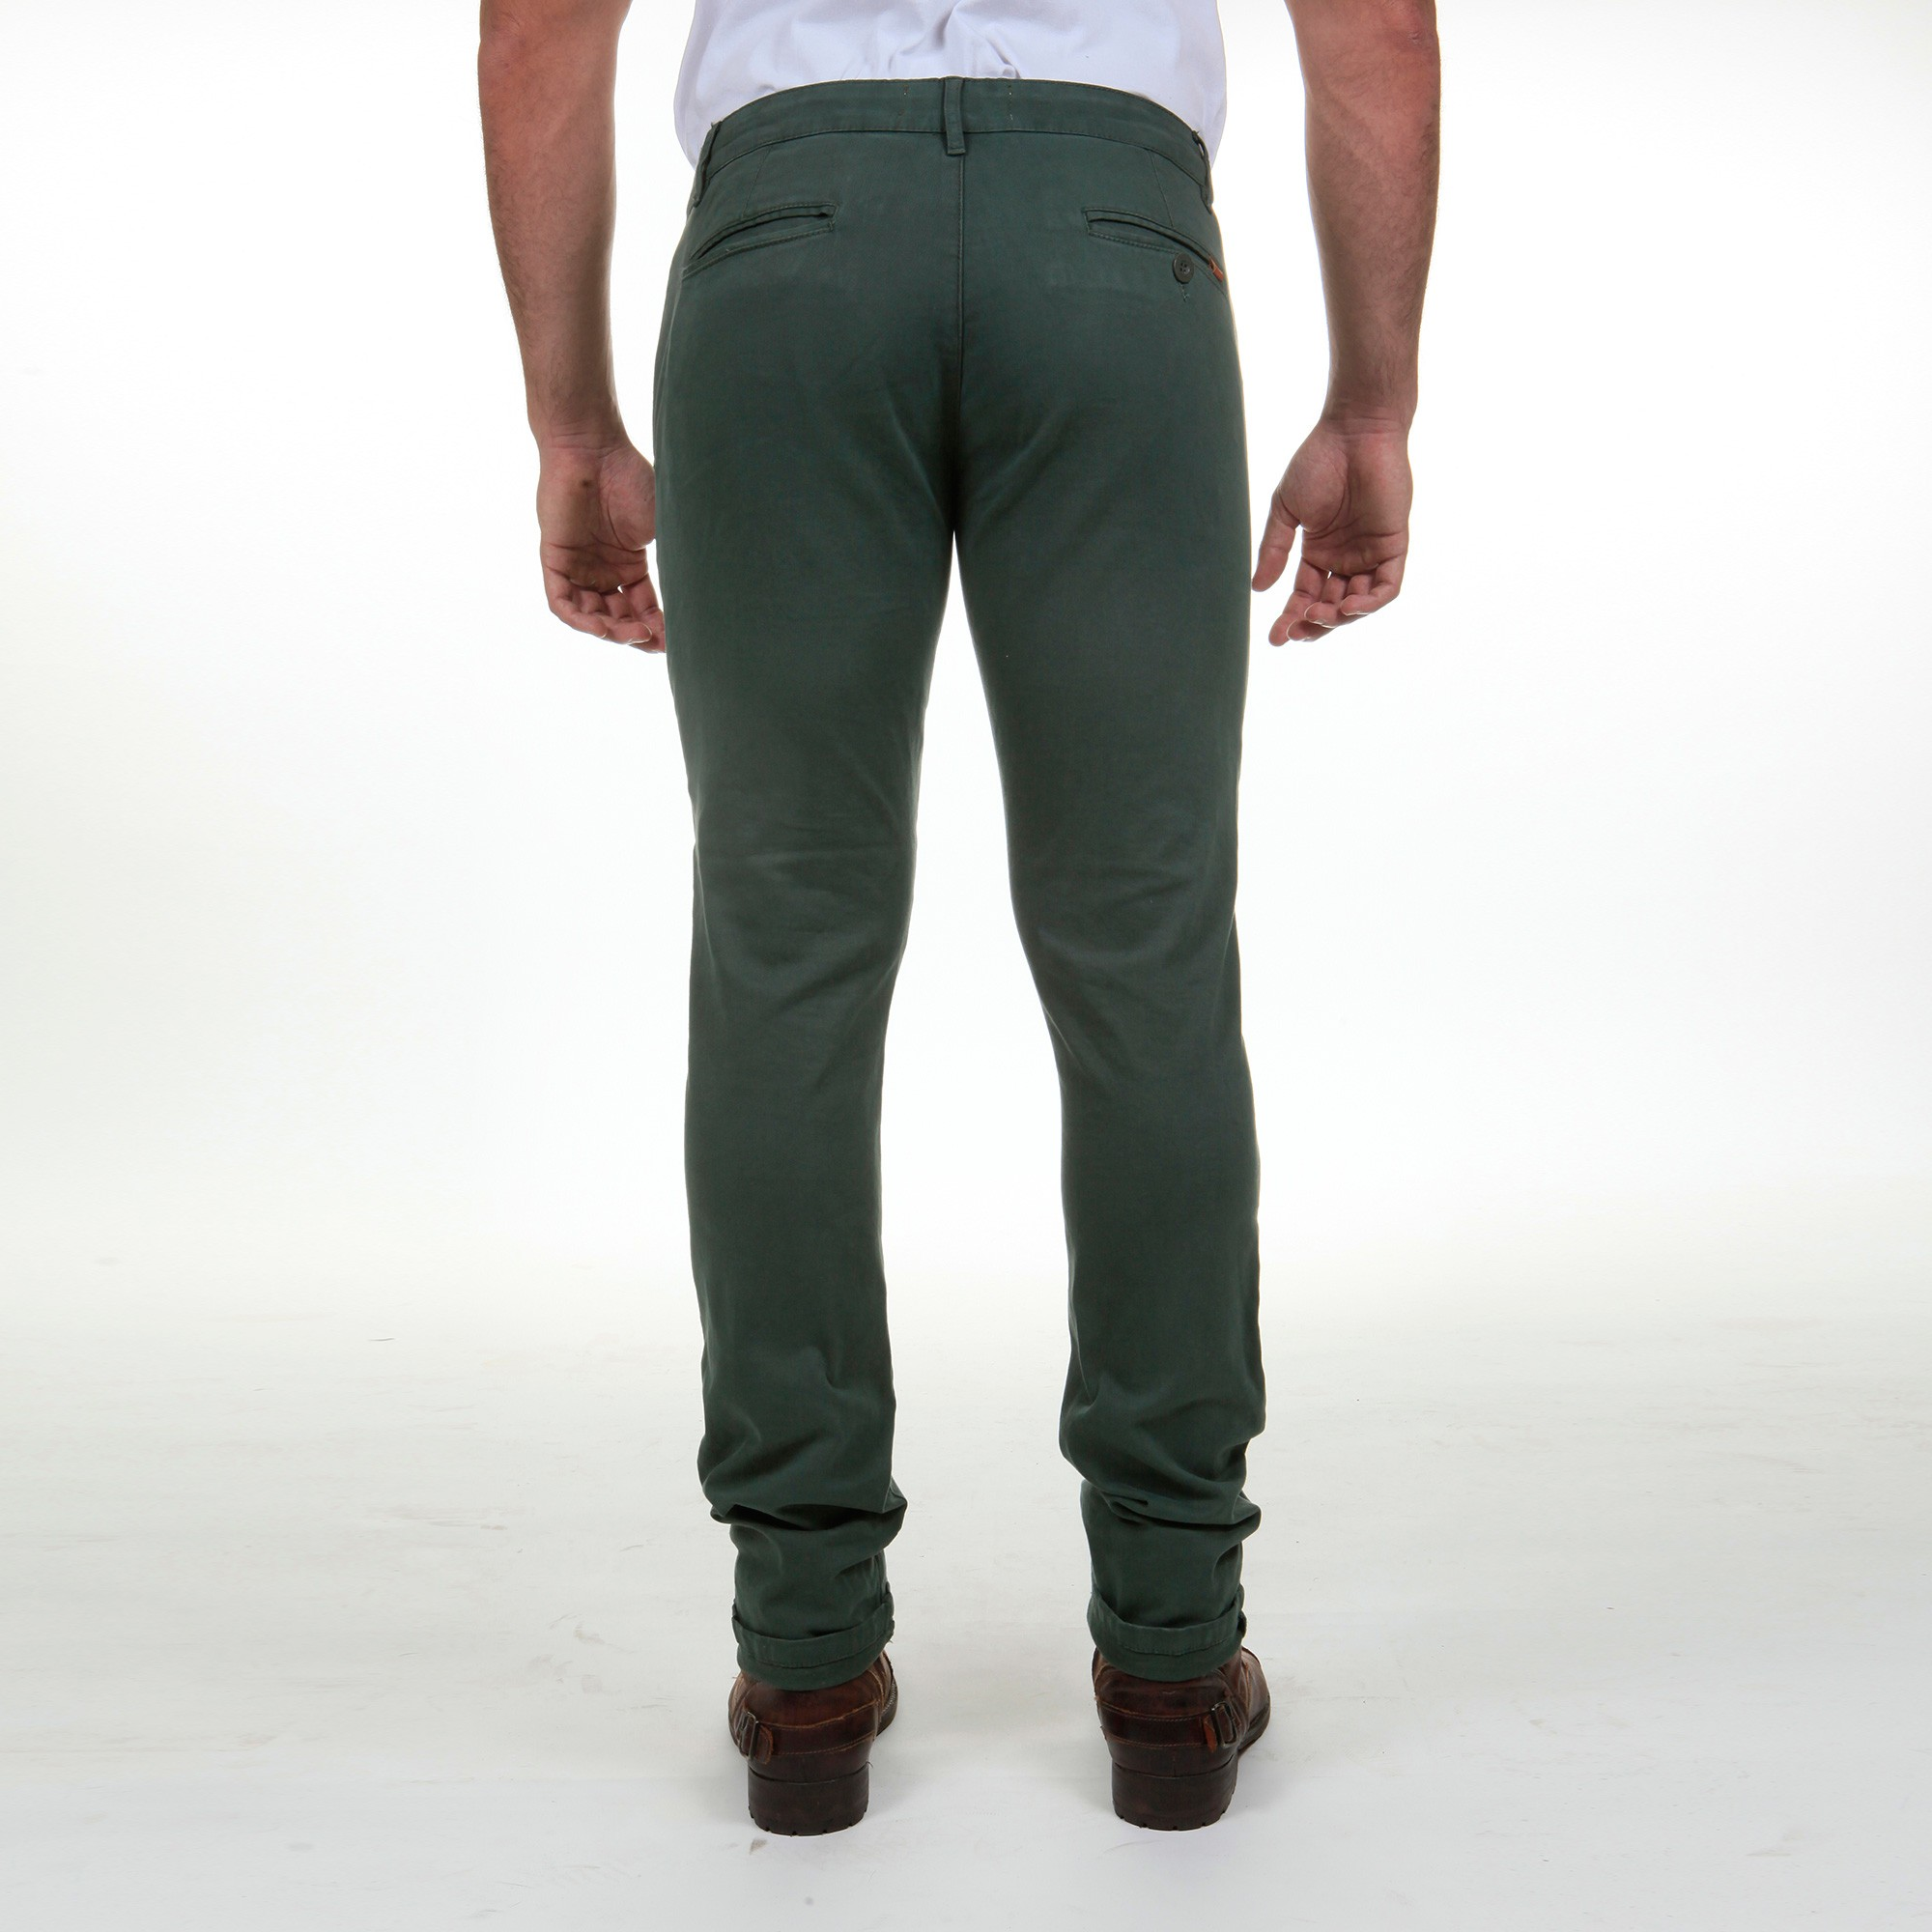 Pantalon Gabardine Stretch Coupe Chino Kaki Fibreflex